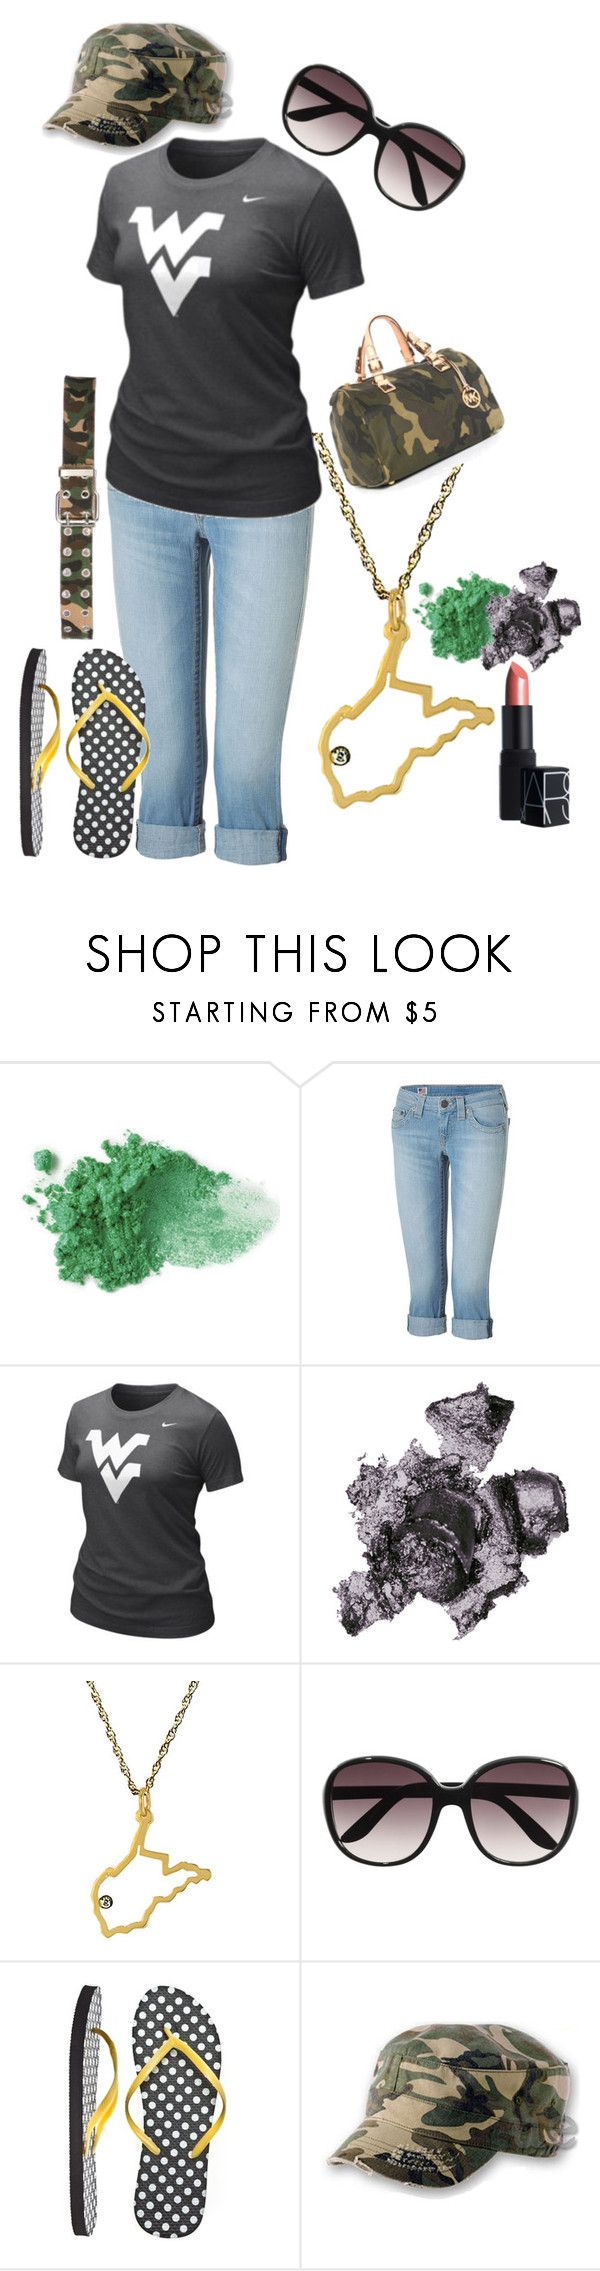 """""""WV"""" by not-your-southern-bell ❤ liked on Polyvore featuring NYX, True Religion, NIKE, By Terry, Maya Brenner, H&M, MICHAEL Michael Kors, Atlantis Caps and NARS Cosmetics"""